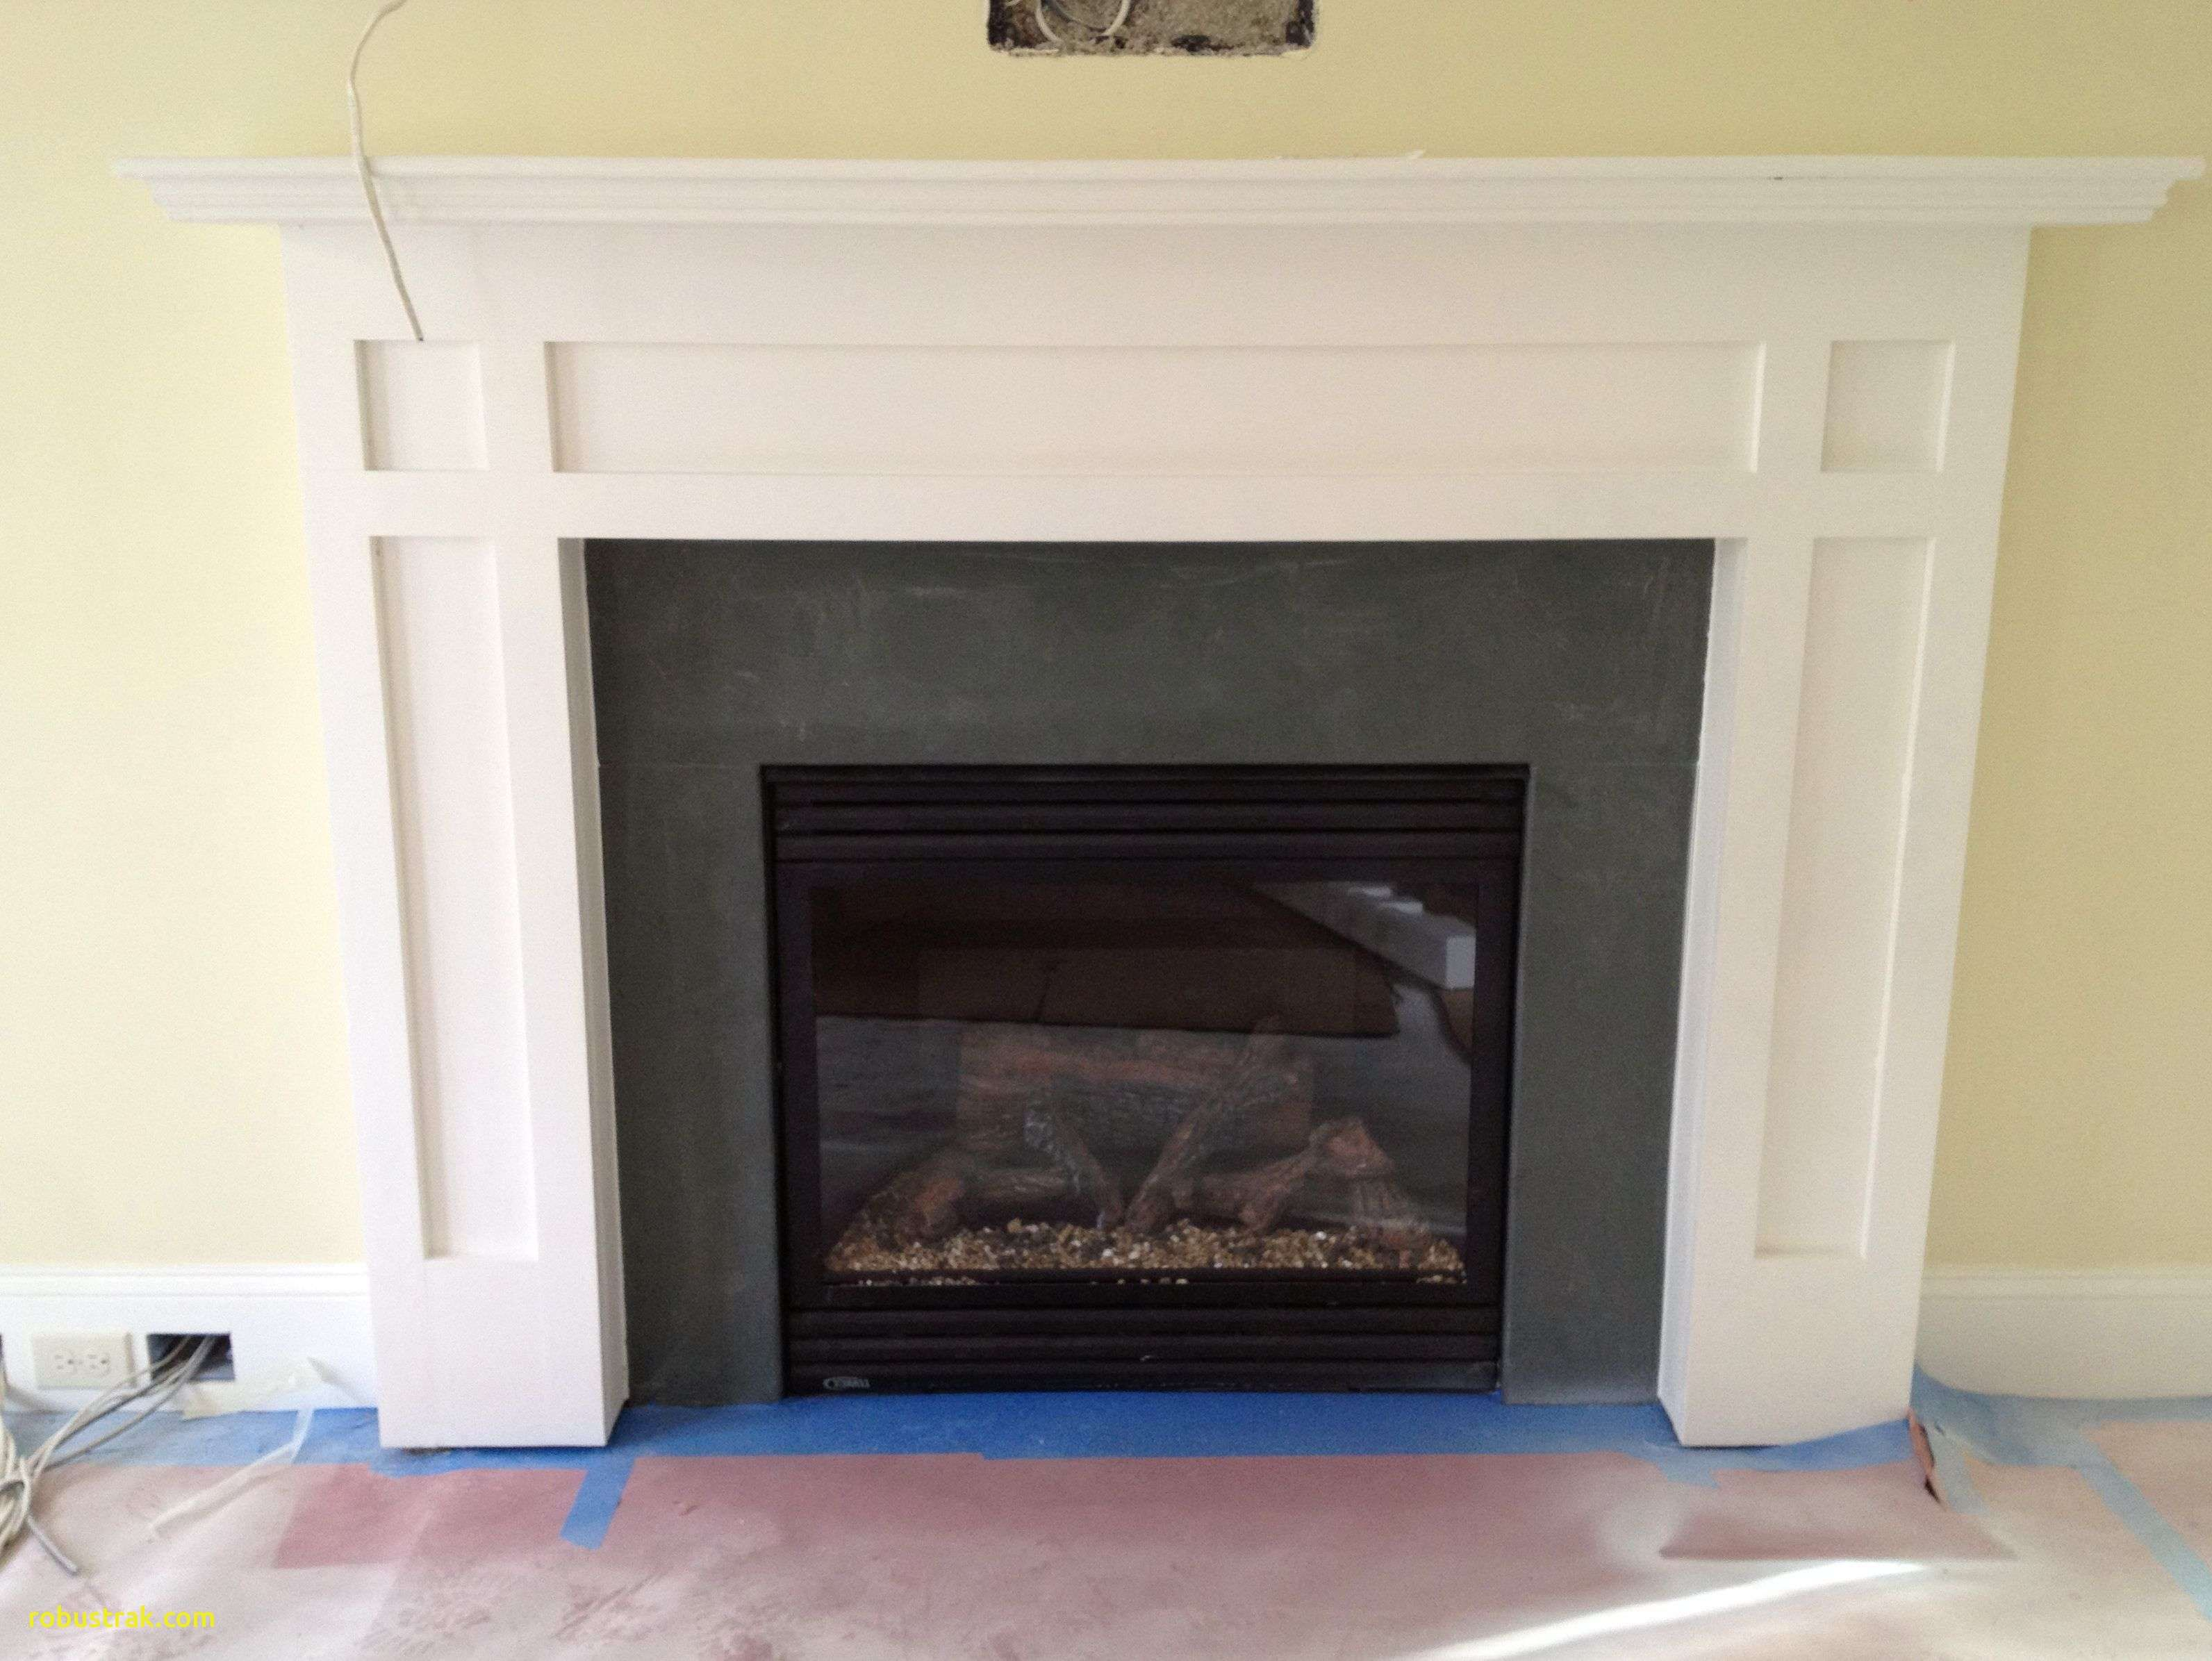 New Slate Tiles For Fireplace Surround